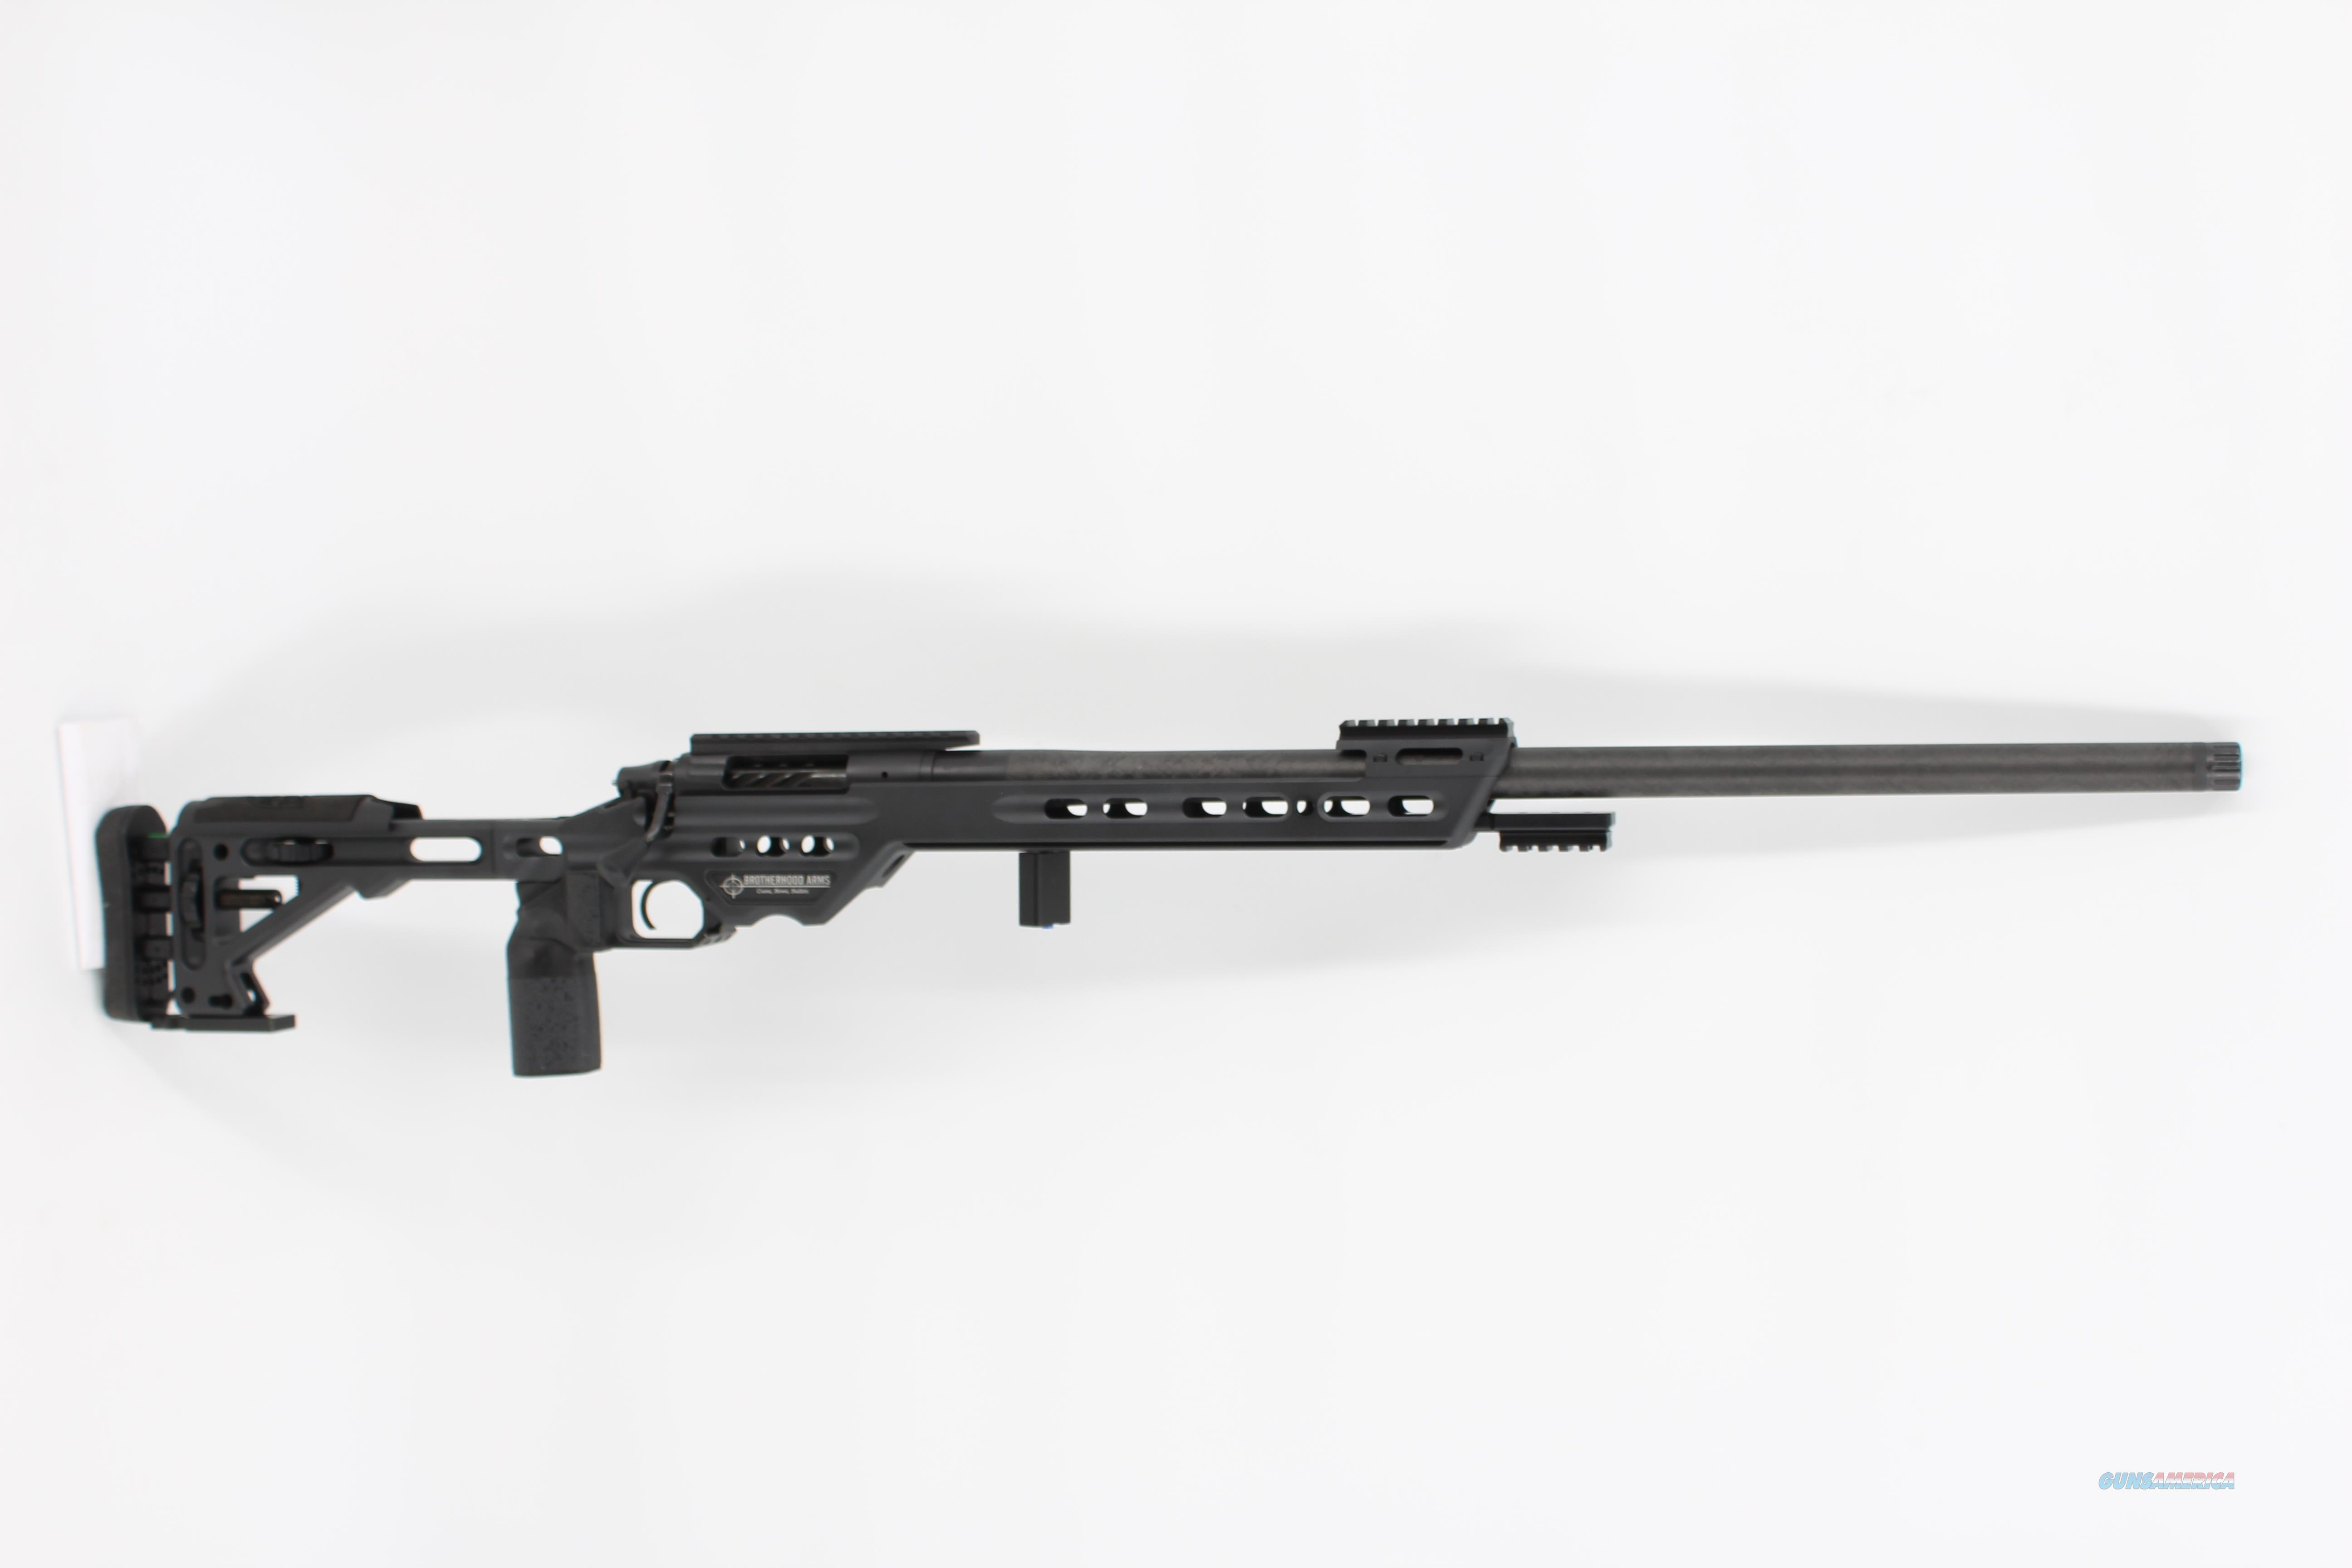 TS Customs Mack Brothers Titanium 6.5 PRC Proof MPA Triggertech  Guns > Rifles > MN Misc Rifles